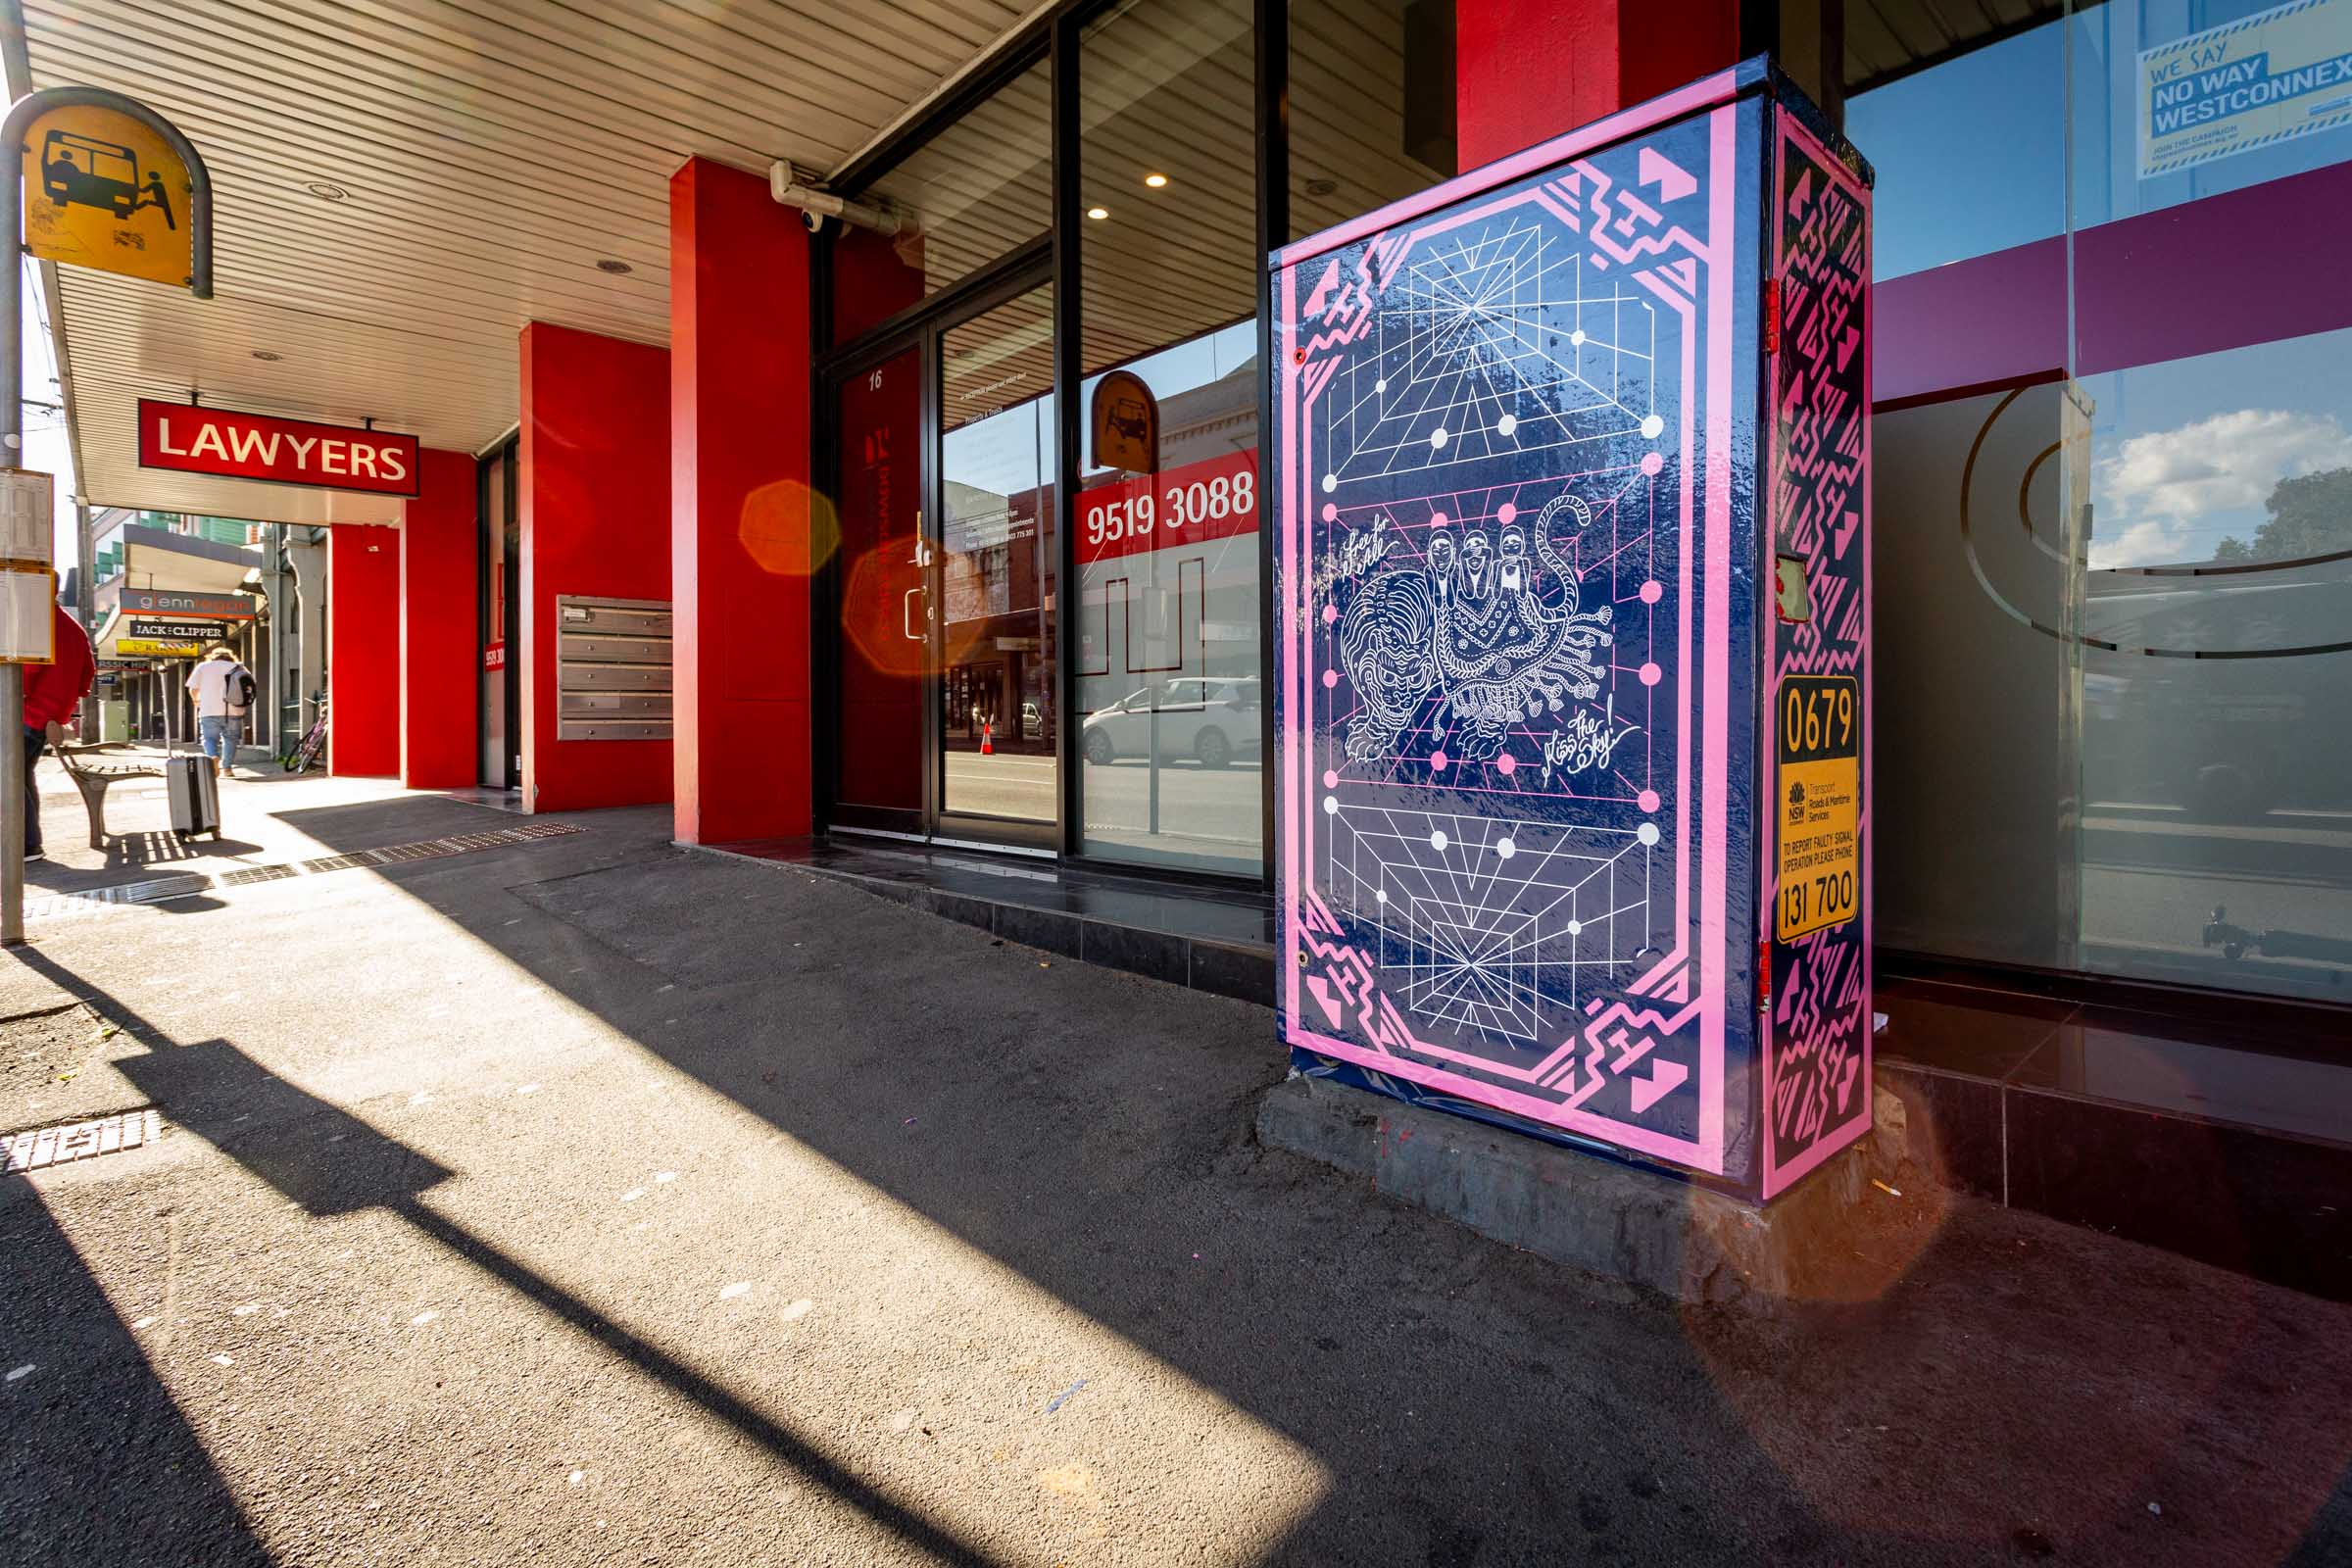 Chris Yee's signal box at King Street and Union Street. Image Credit: Art Pharmacy Consulting / Jodie Barker